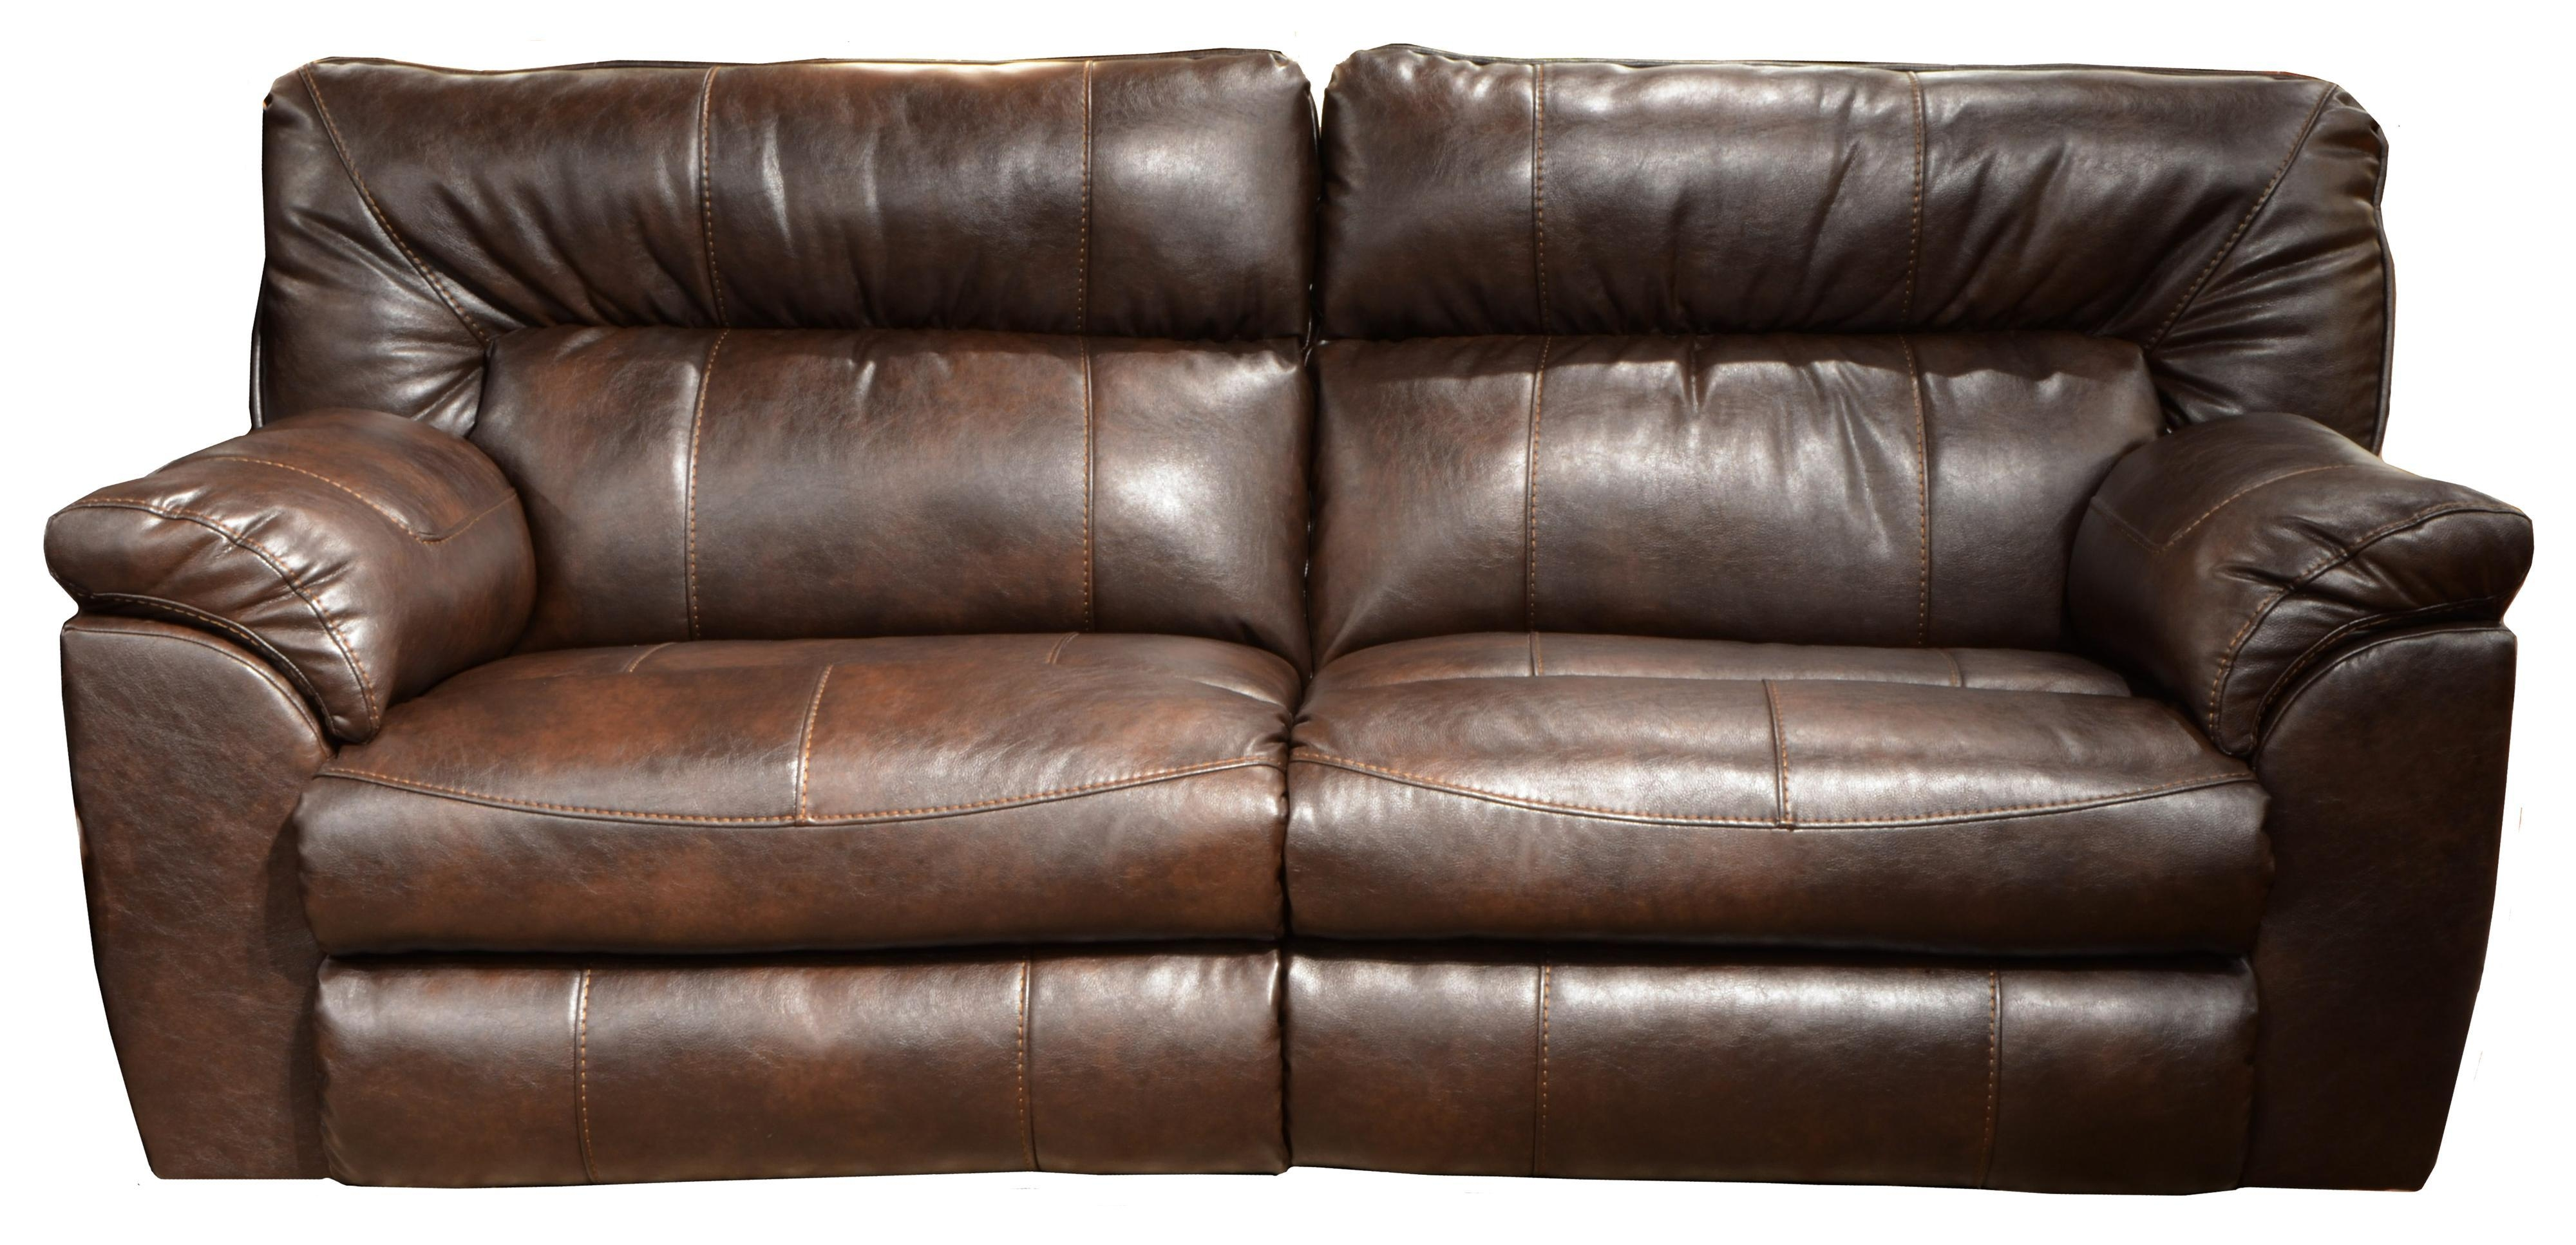 Bonded Leather Sofa | Best Sofas Ideas – Sofascouch With Regard To Bonded Leather Sofas (View 9 of 20)